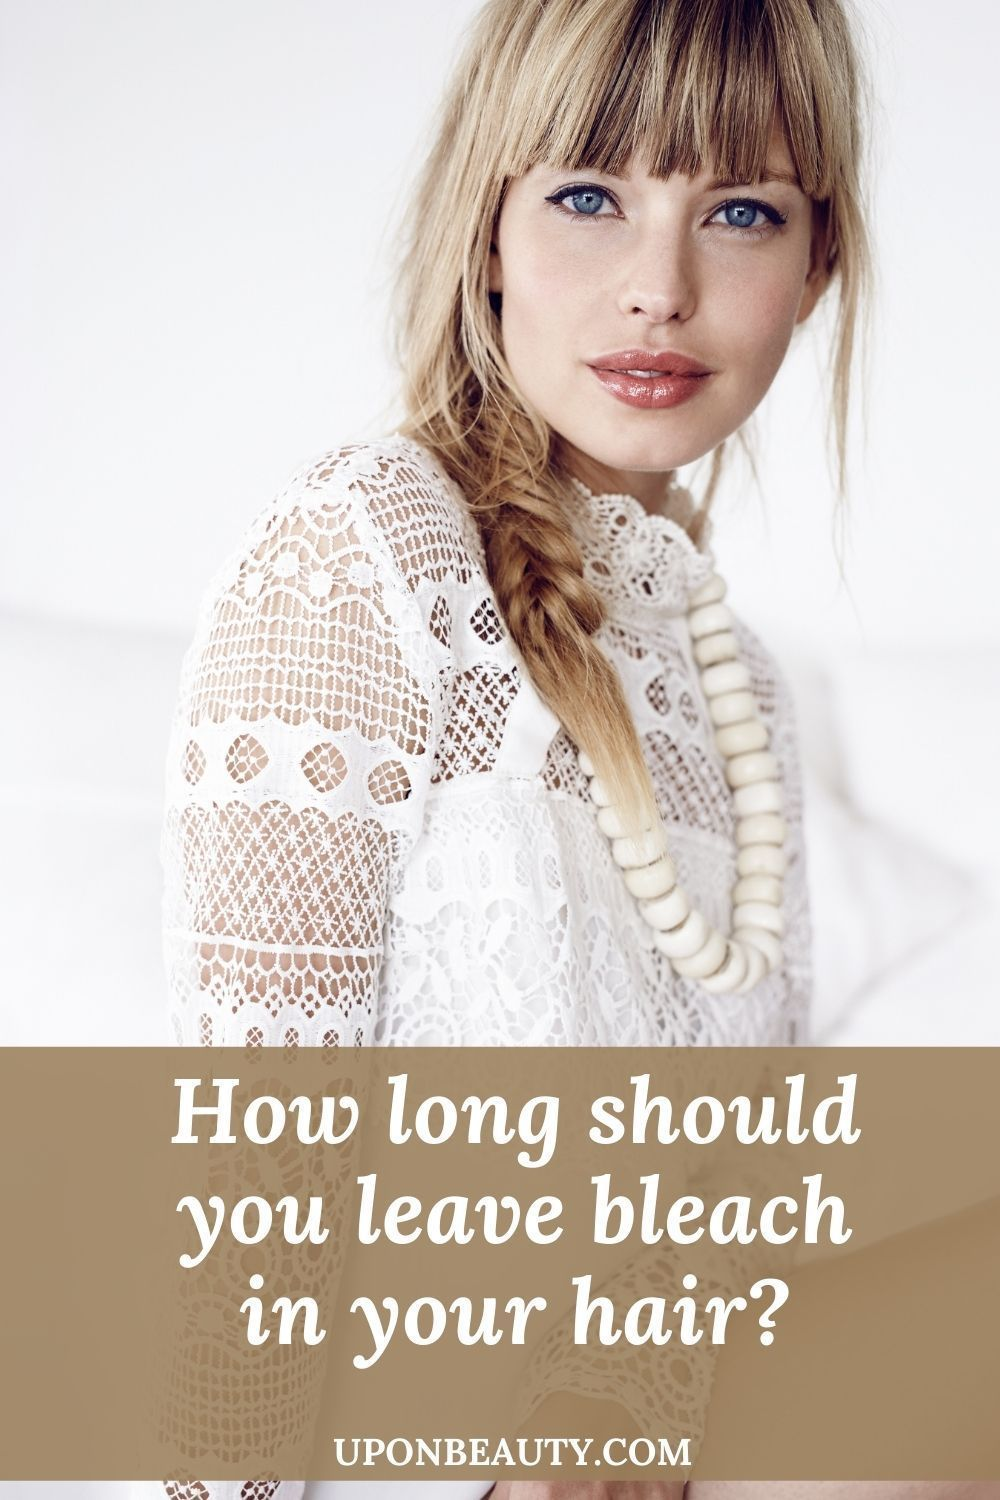 How Long Should You Leave Bleach In Your Hair Up On Beauty Bleached Hair Your Hair Bleaching Your Hair